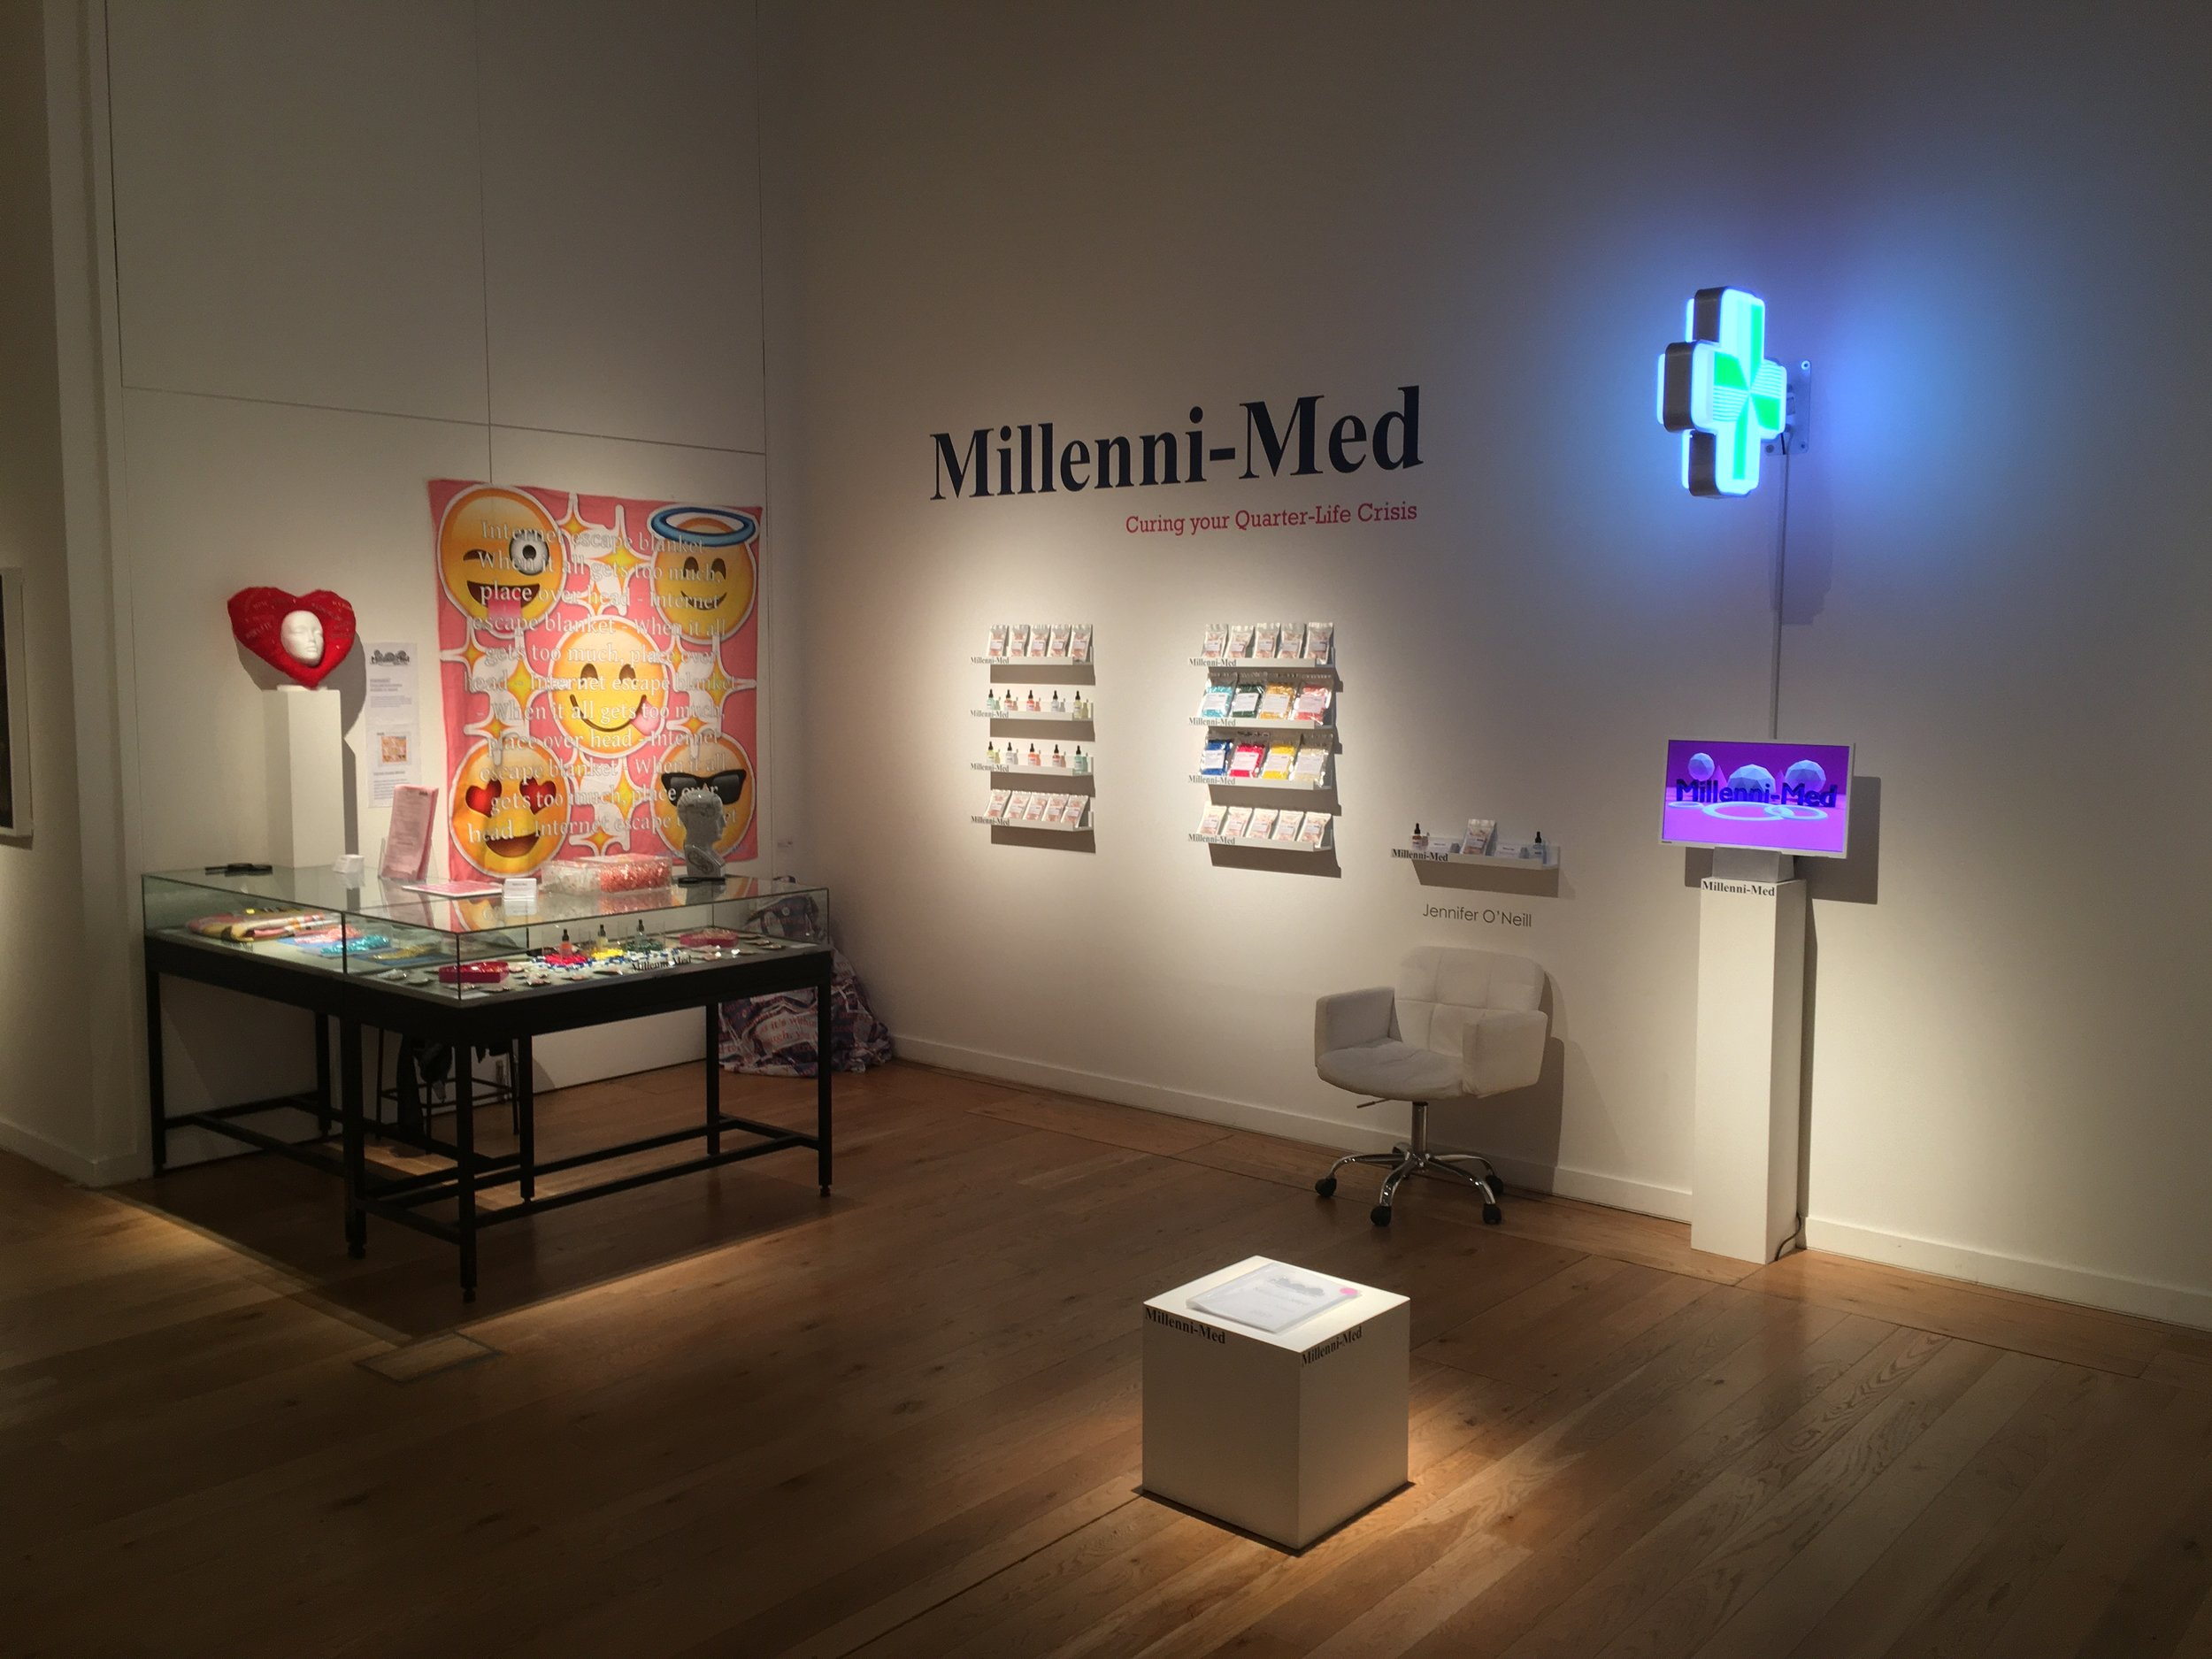 'Millenni-Med', Jennifer O'Neill, Ampersand Inventions studio member, Great North Museum, June 2019.